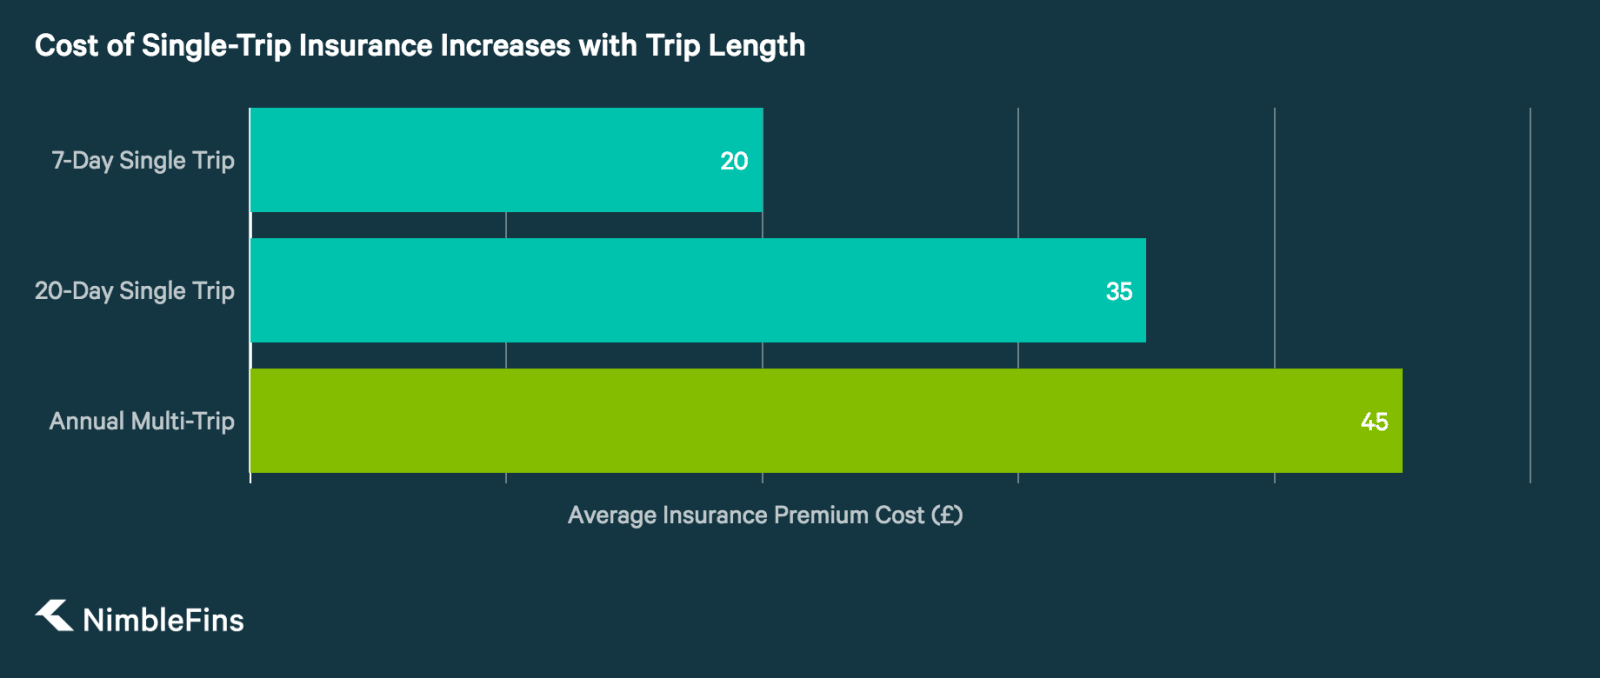 Chart showing that As Trip Length Increases, Single-Trip Premium Approaches Multi-Trip Premium